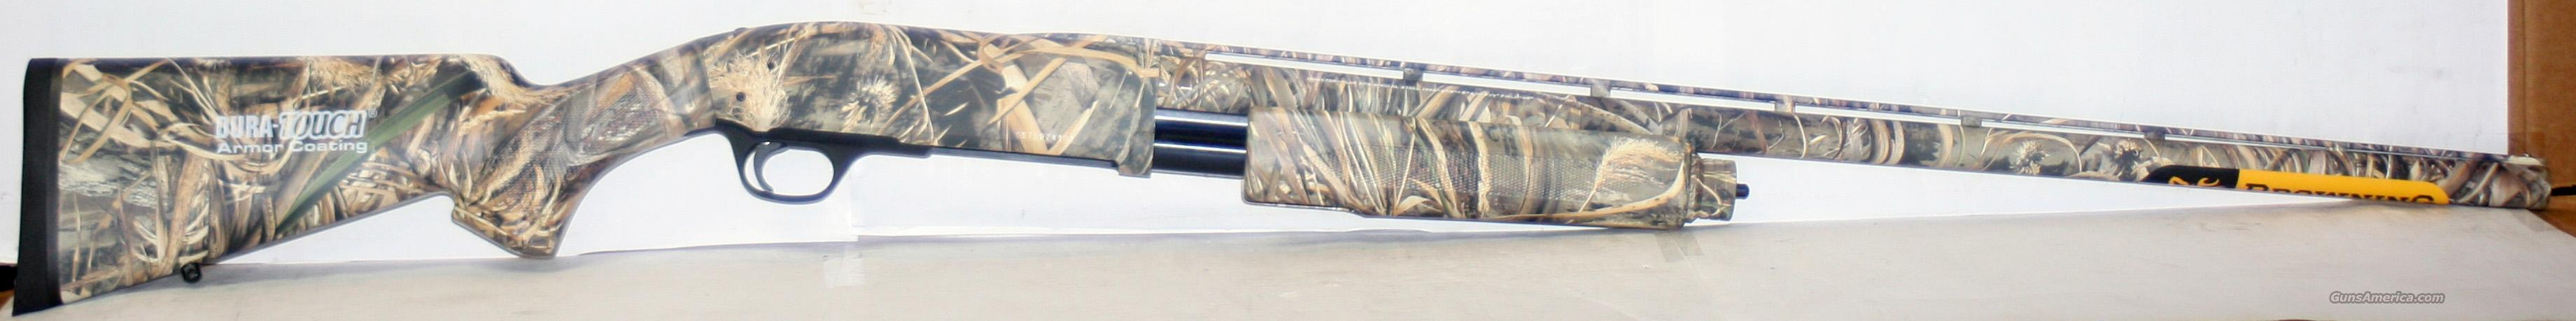 "BROWNING BPS MAX 5 DURA TOUCH 12 GA 28"" 3.5"" MAGNUM NEW IN BOX  Guns > Shotguns > Browning Shotguns > Pump Action > Hunting"